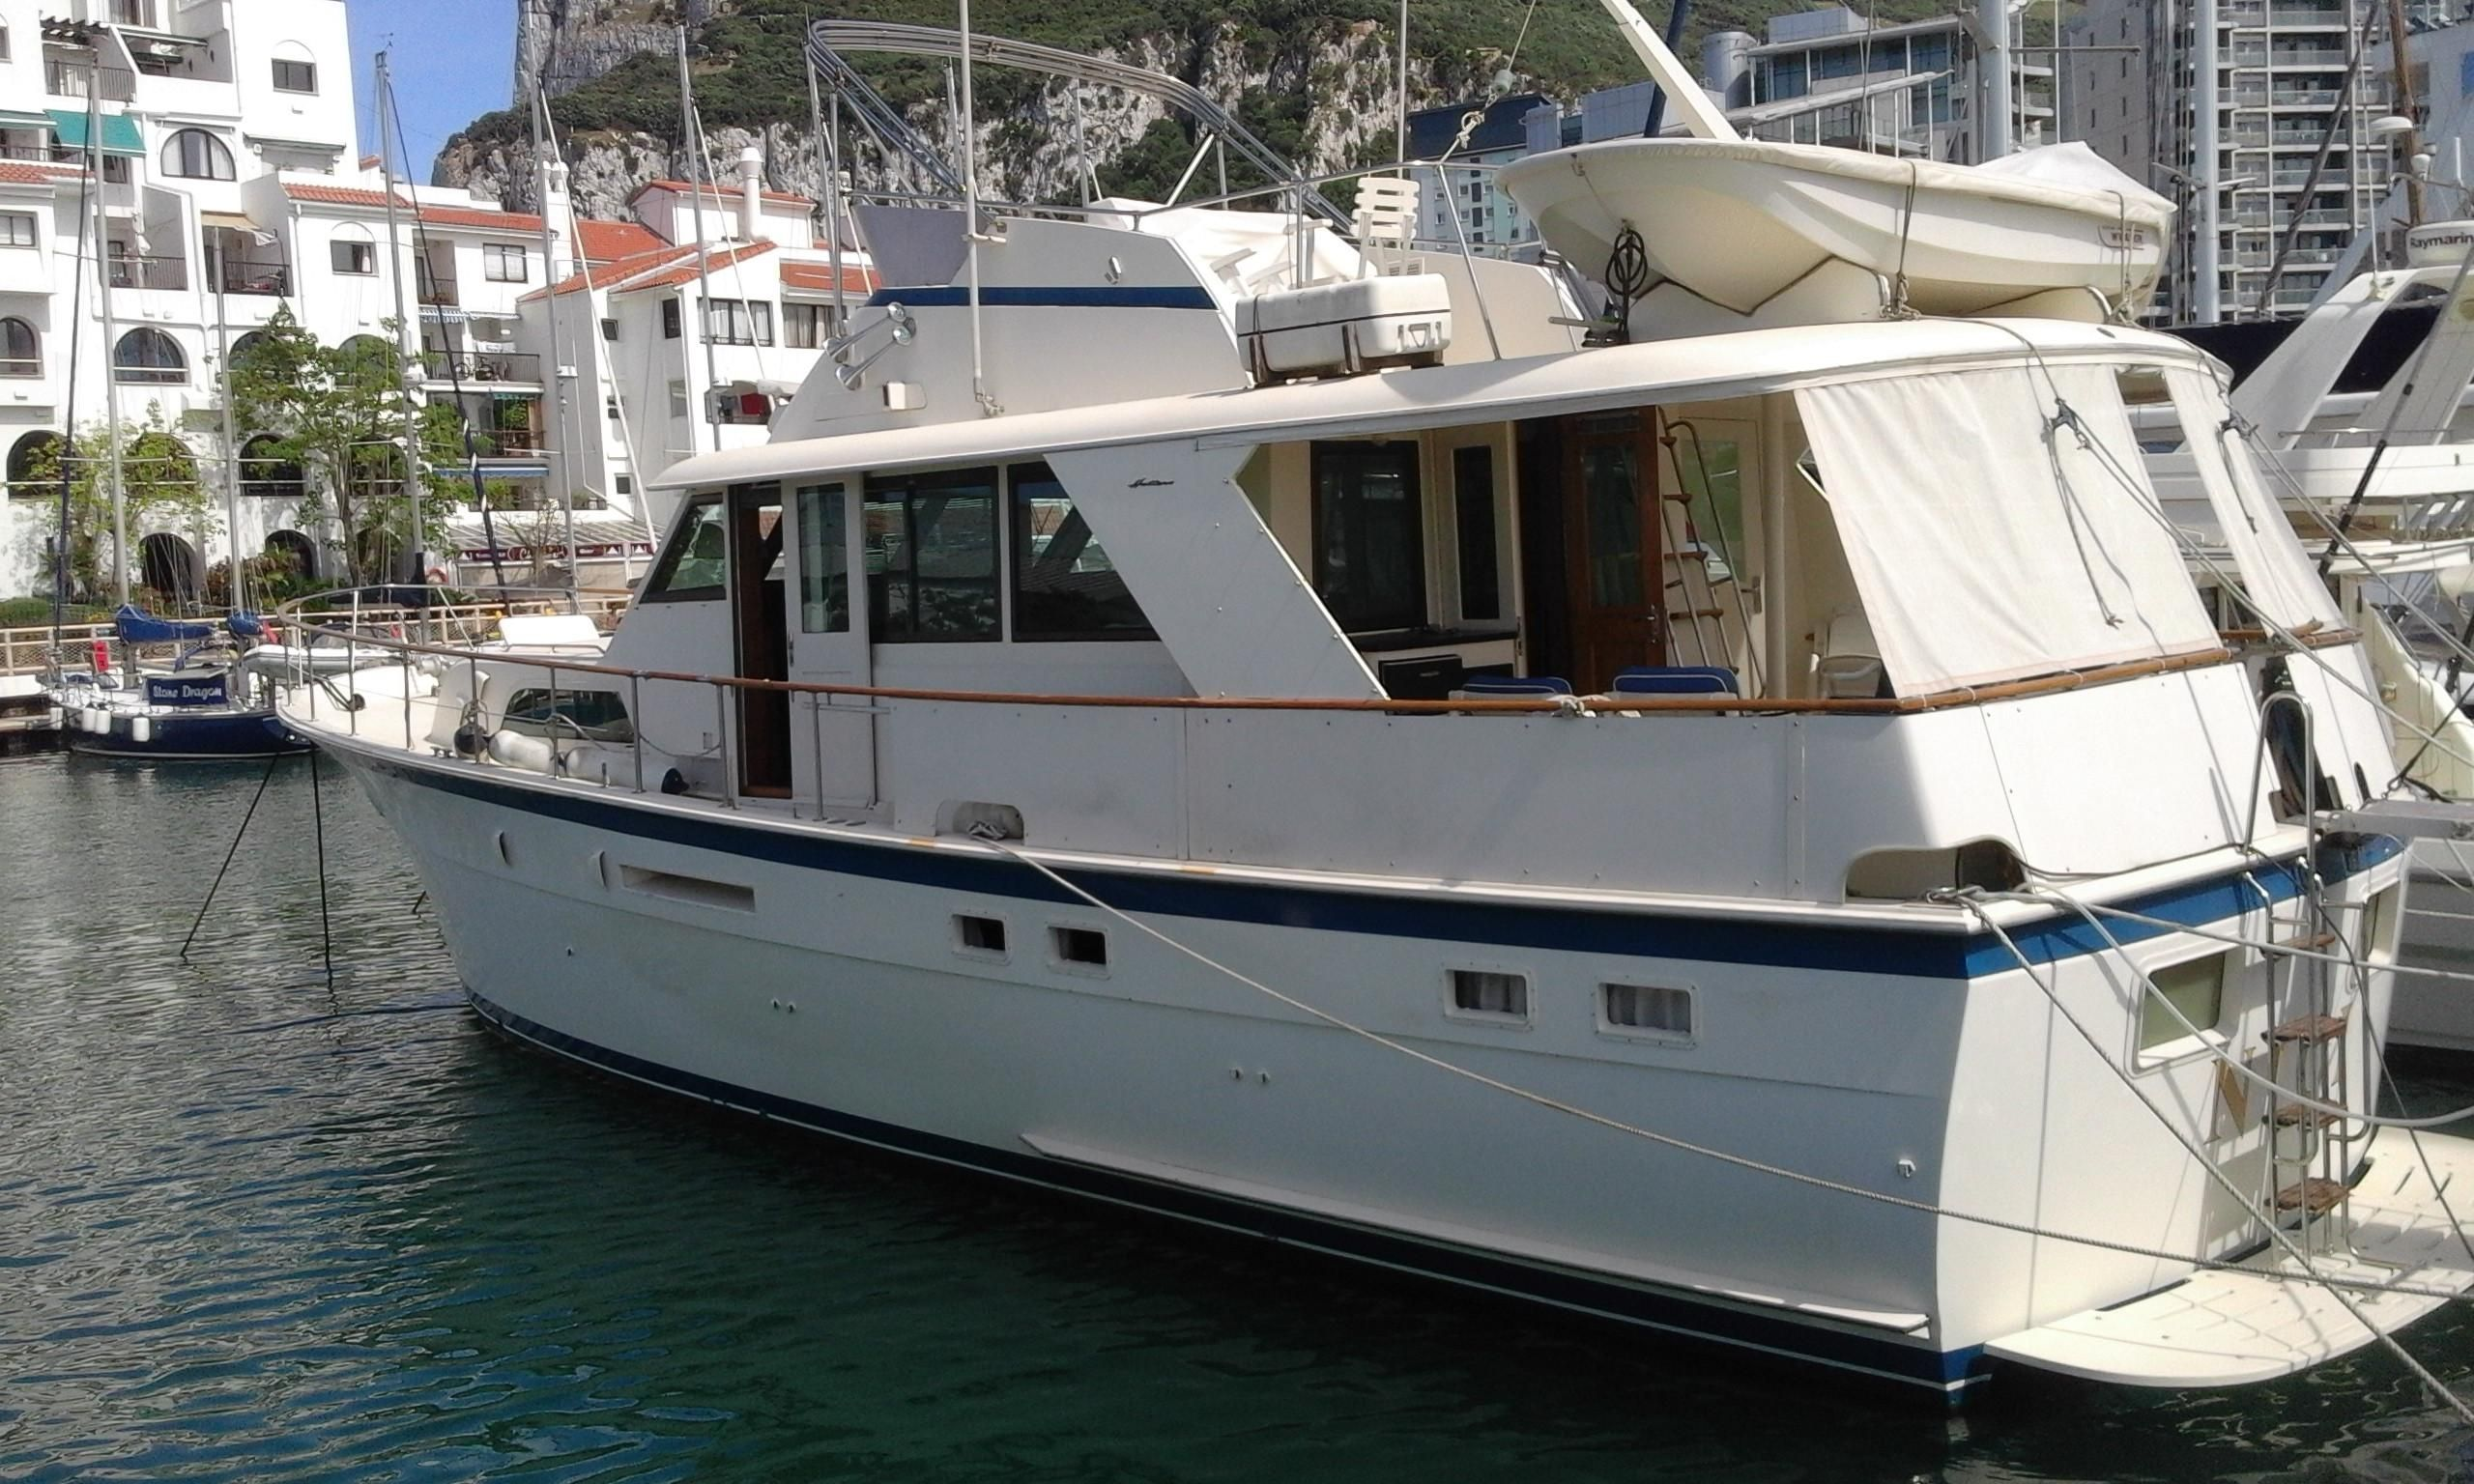 1984 hatteras 53 classic motor yacht power boat for sale for Vintage motor yachts for sale